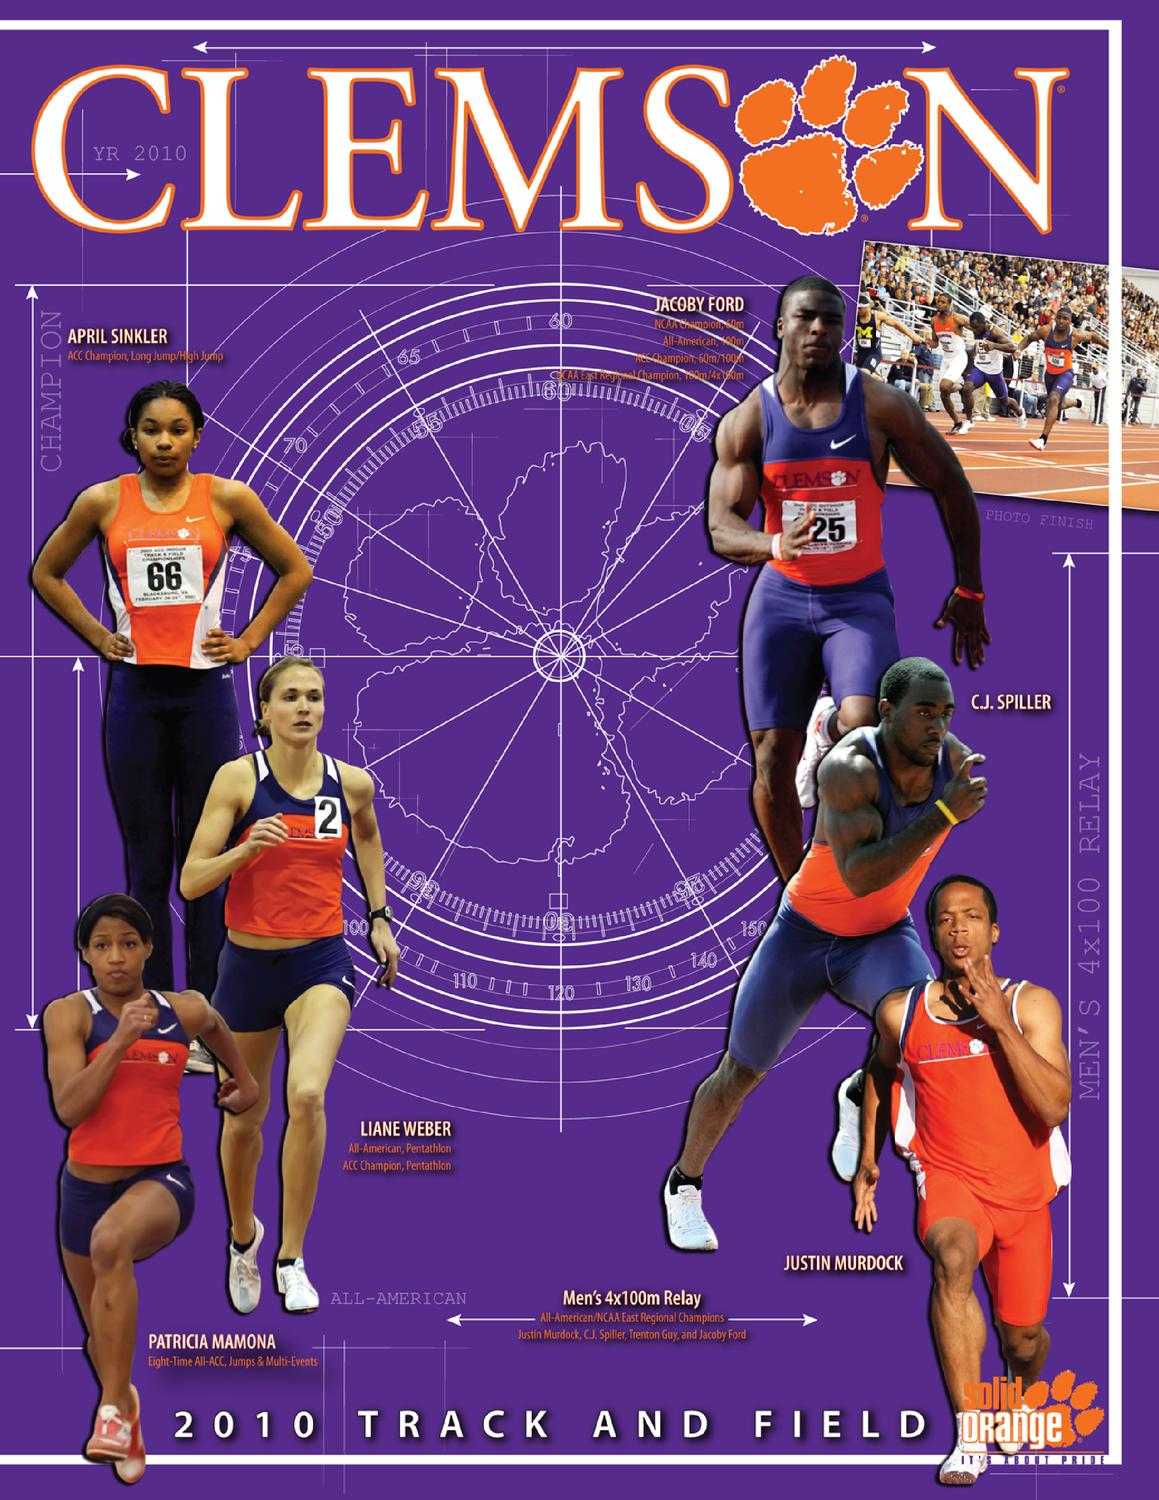 2009-10 Clemson Track & Field Media Guide by Clemson Tigers - issuu